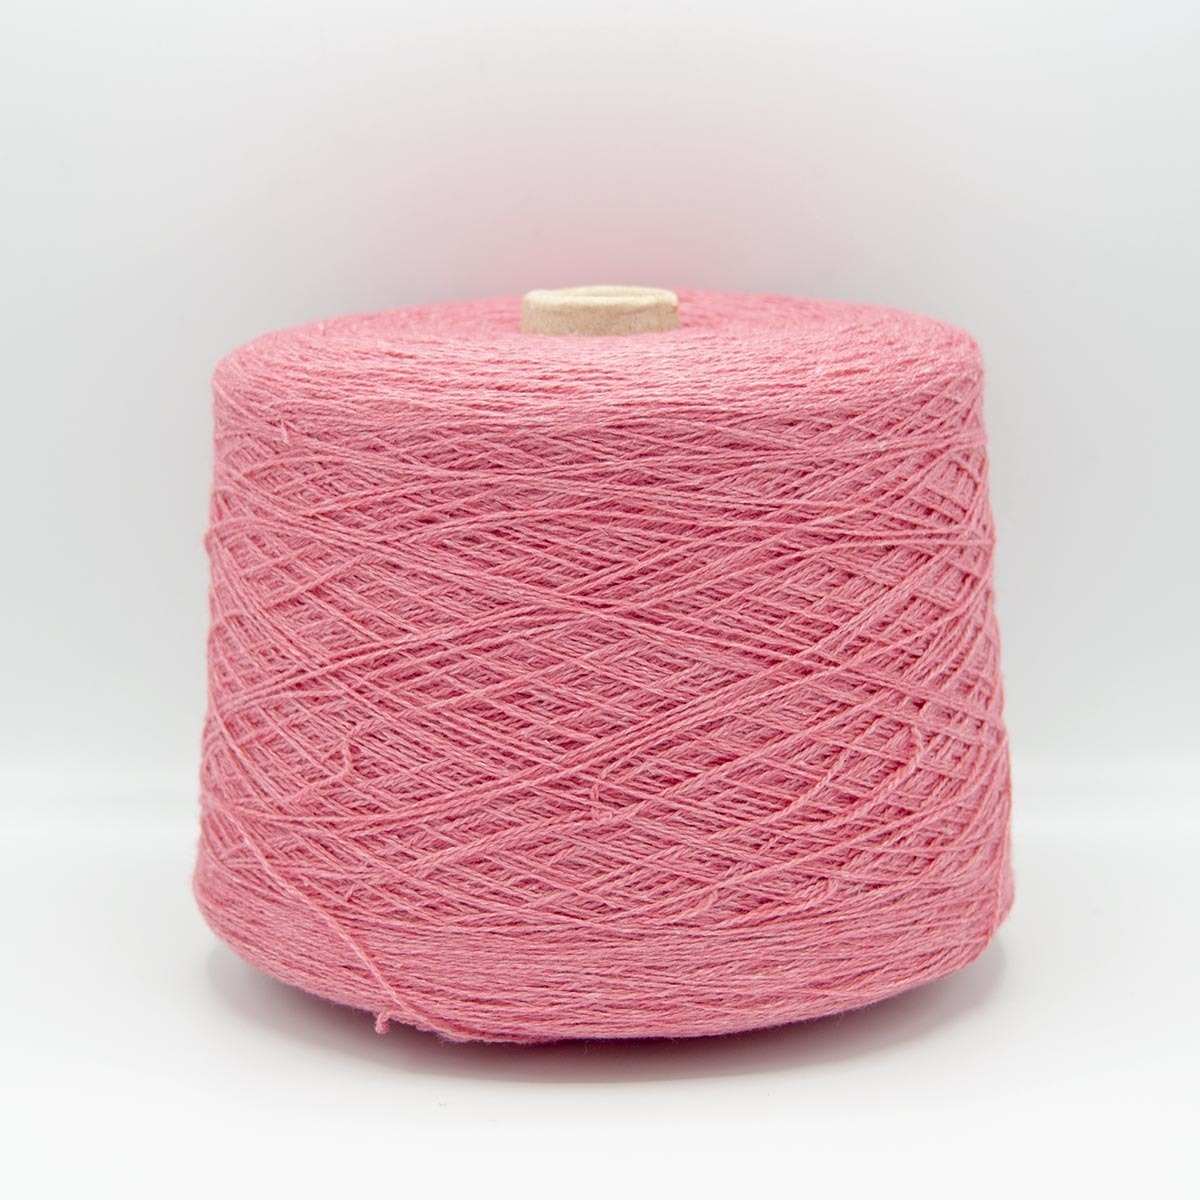 Knoll Yarns Coast - 048